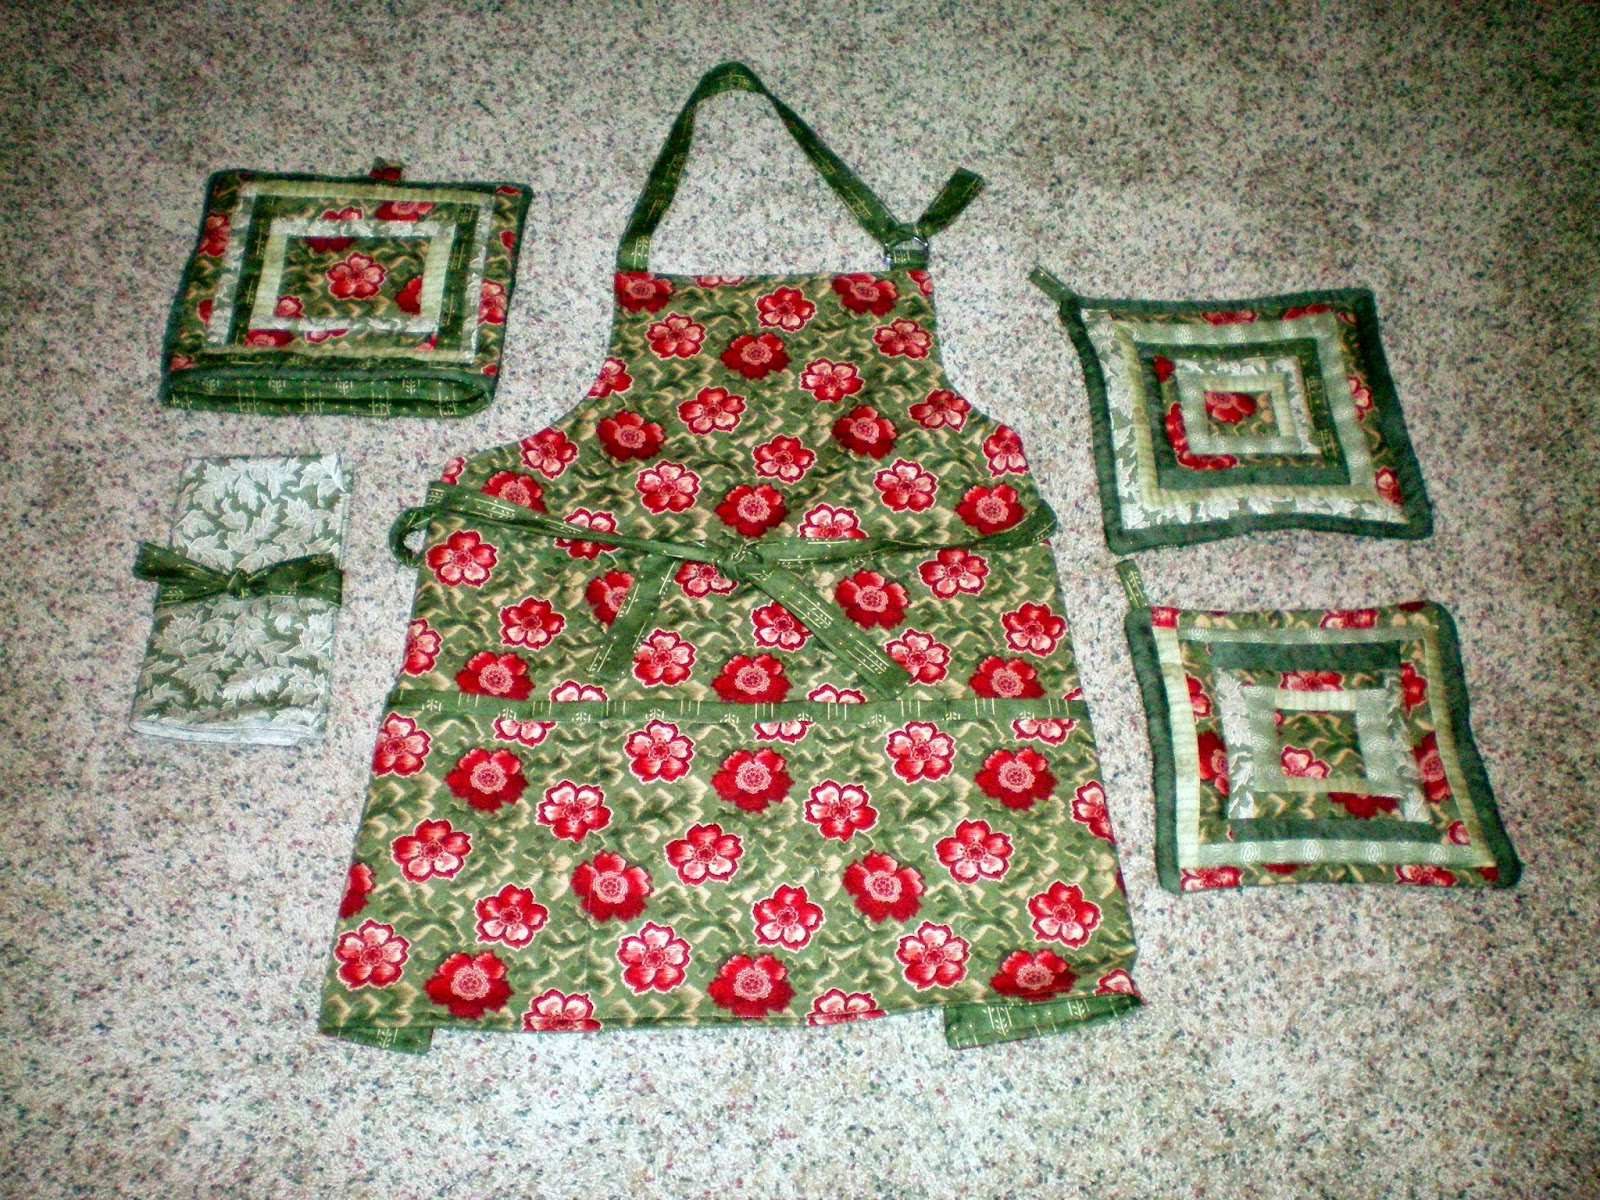 michele bilyeu creates with heart and hands free apron